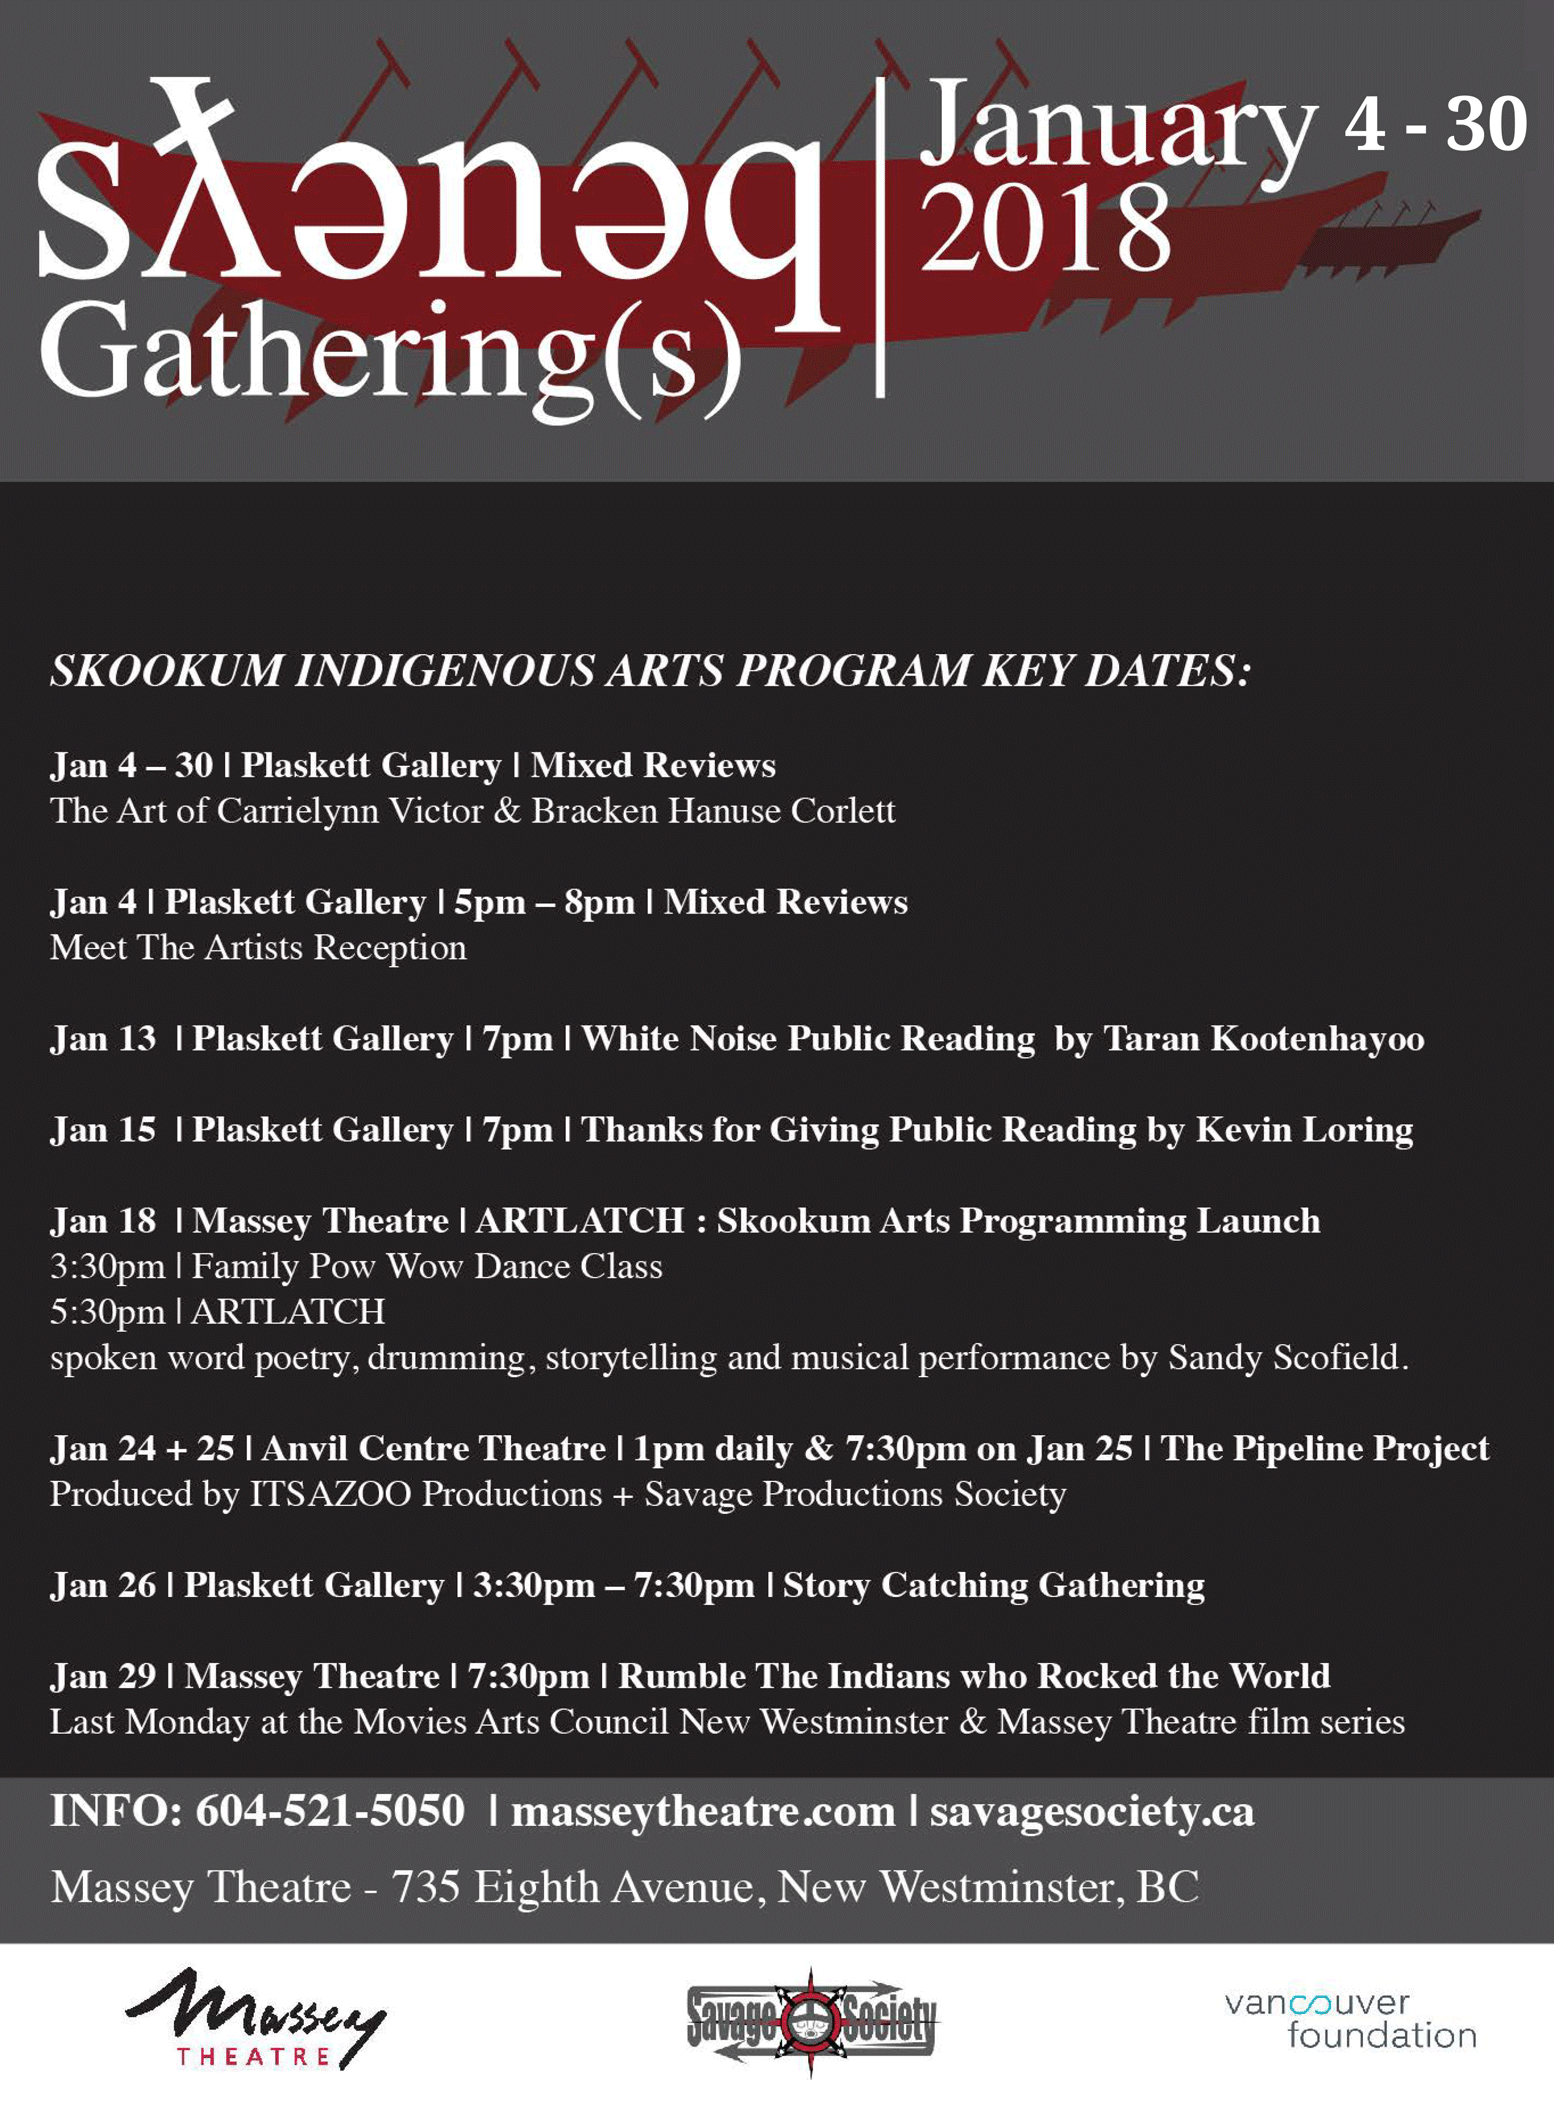 Skookum indigenous arts program key dates